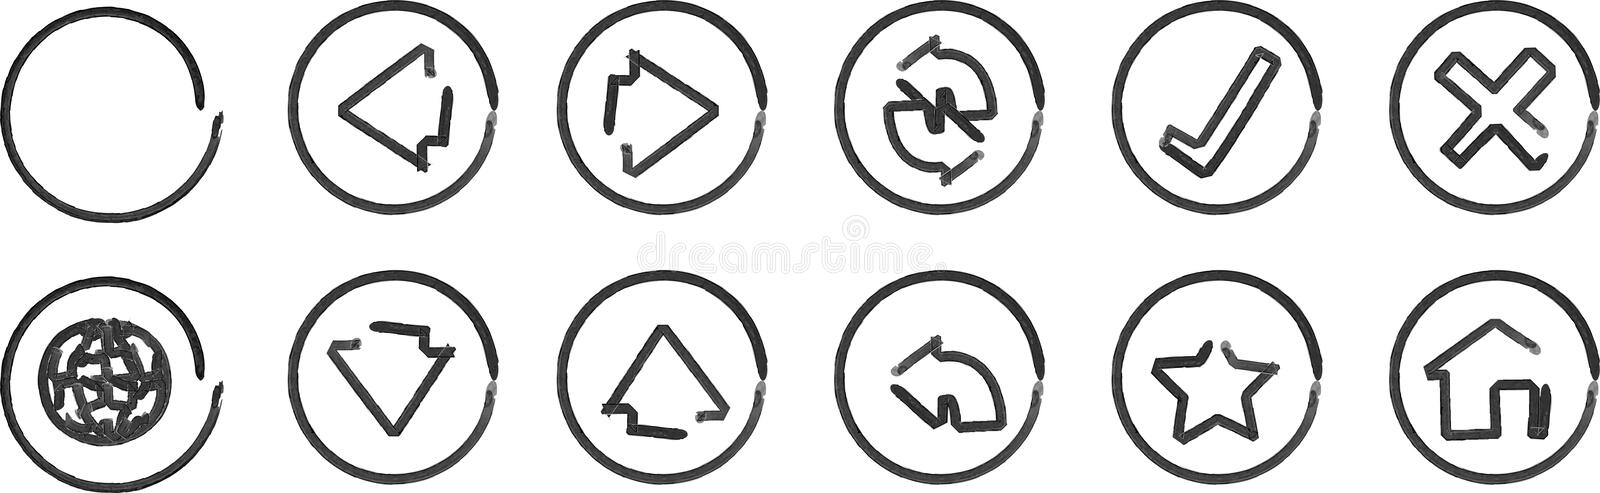 Whiteboard navigation icons